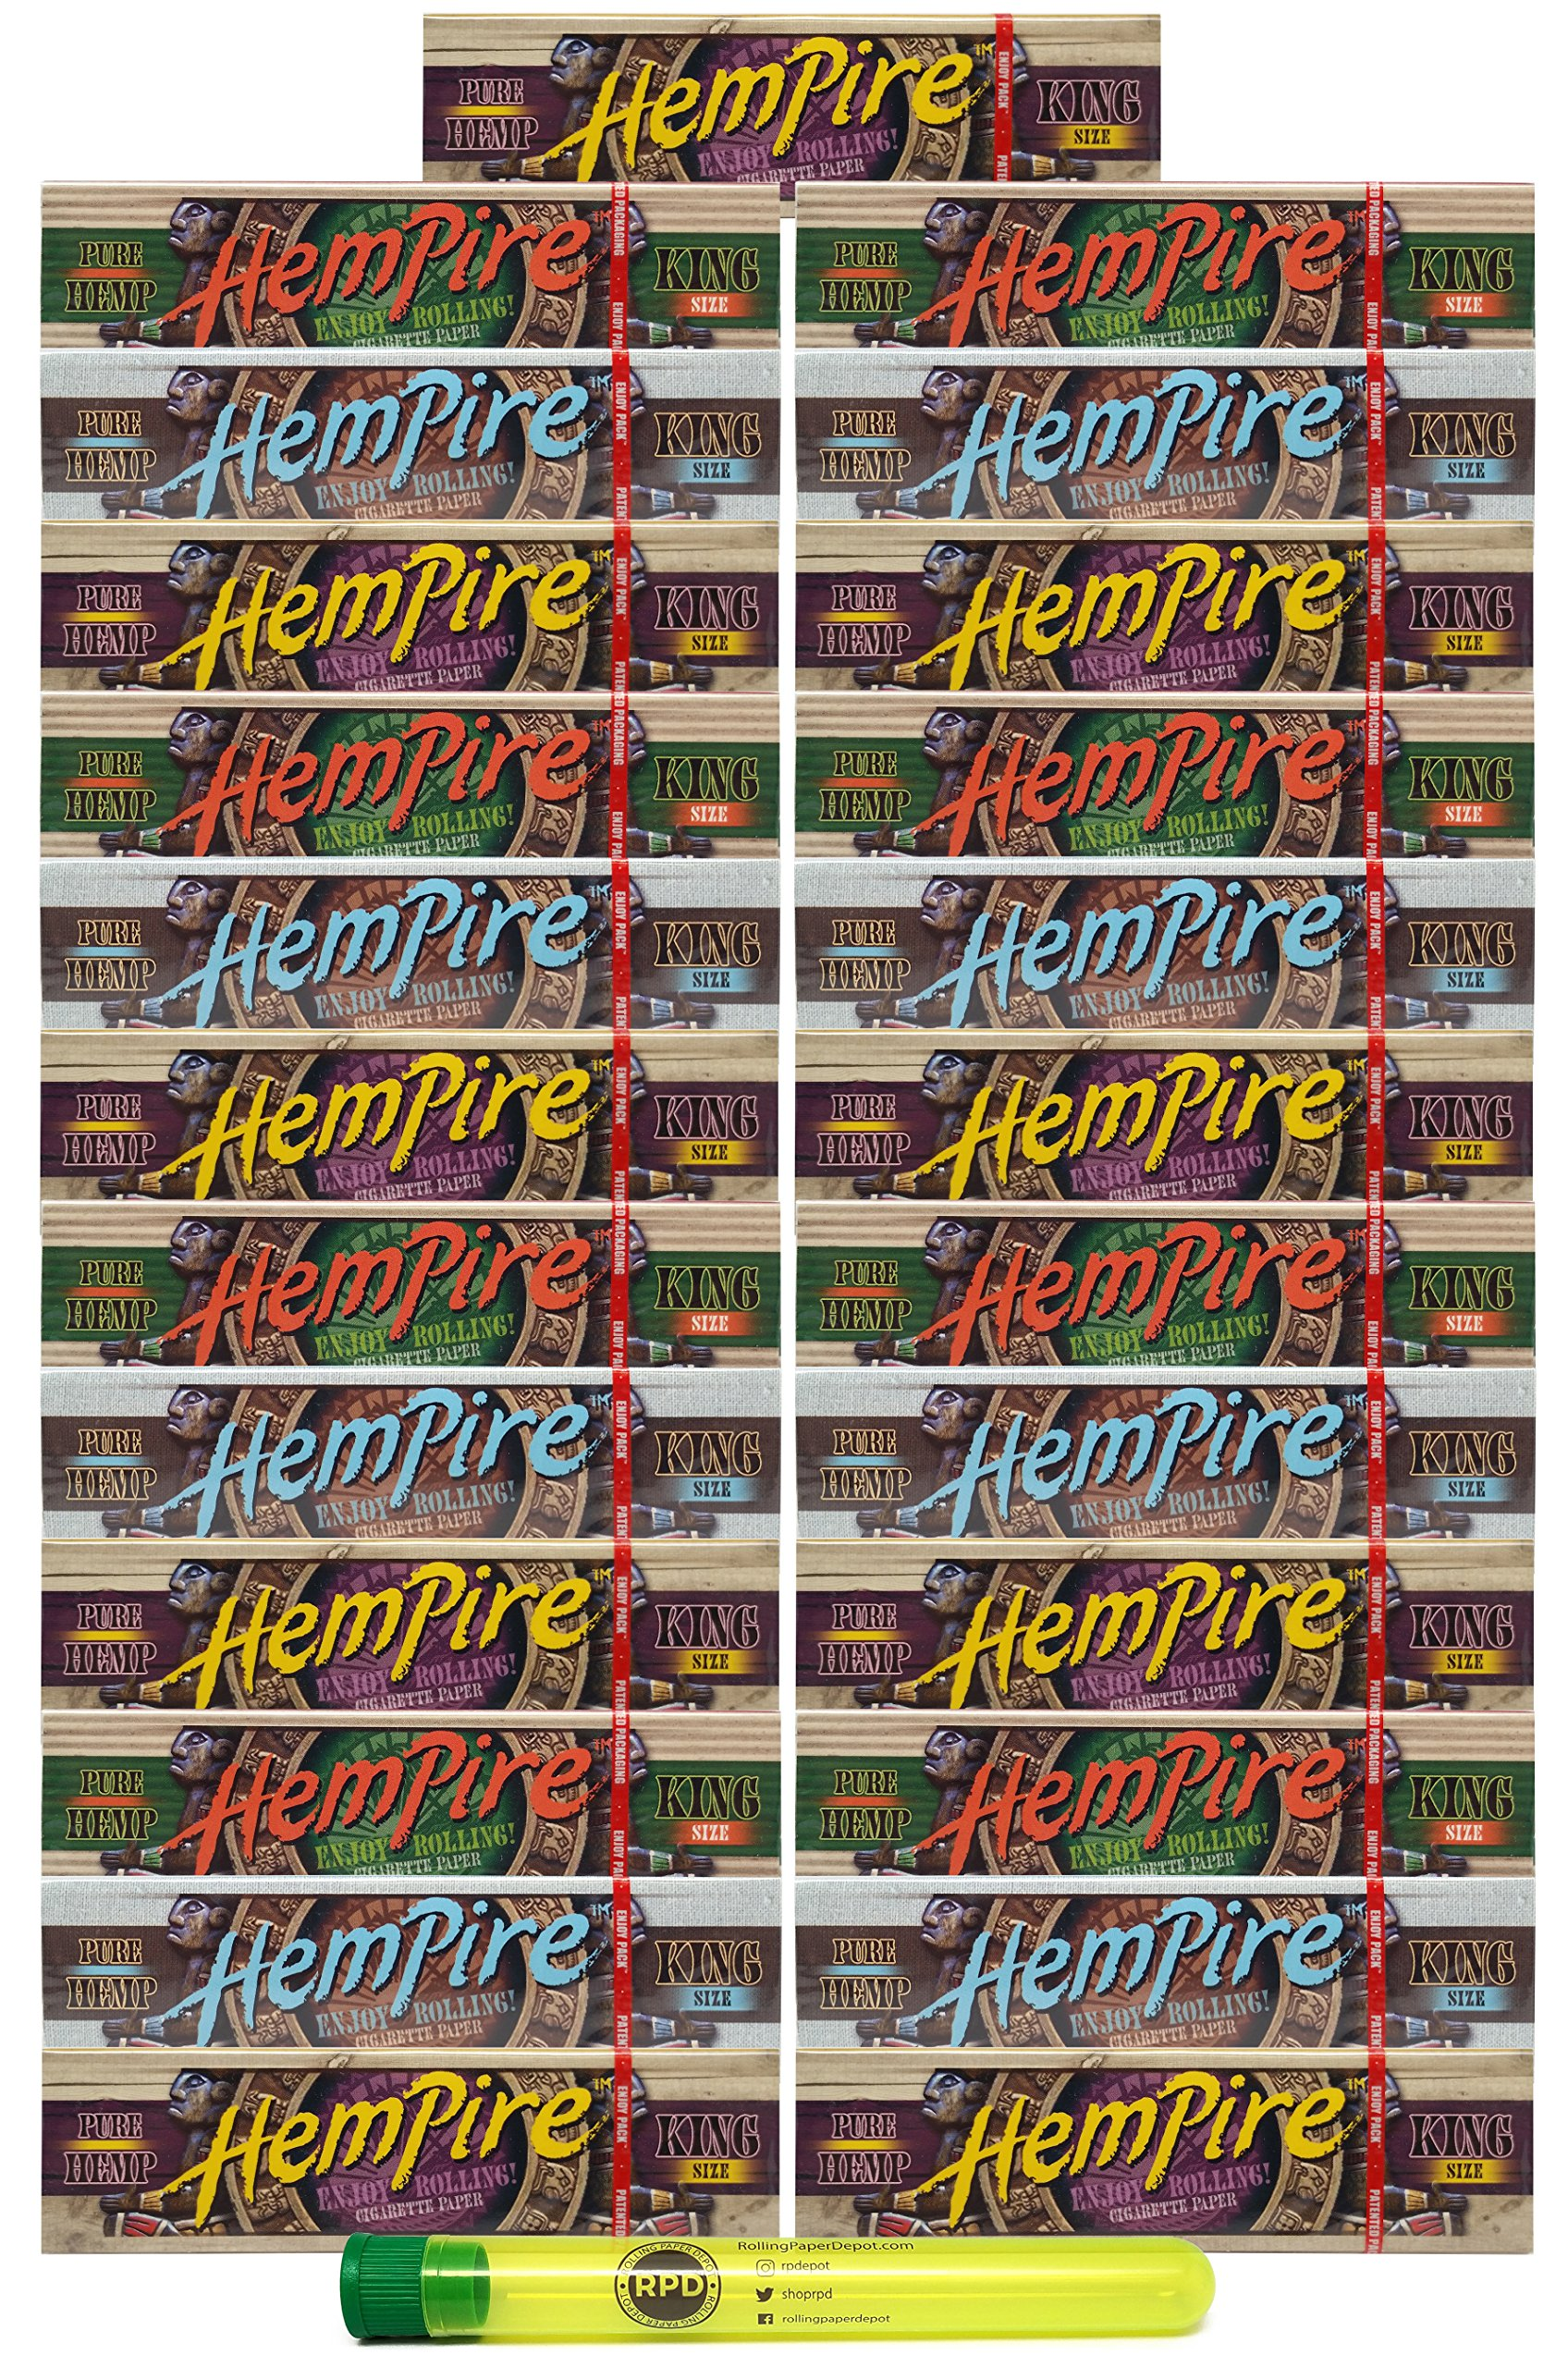 Hempire King Size Rolling Papers (25 Packs) with Rolling Paper Depot KewlTube by Hempire, Rolling Paper Depot